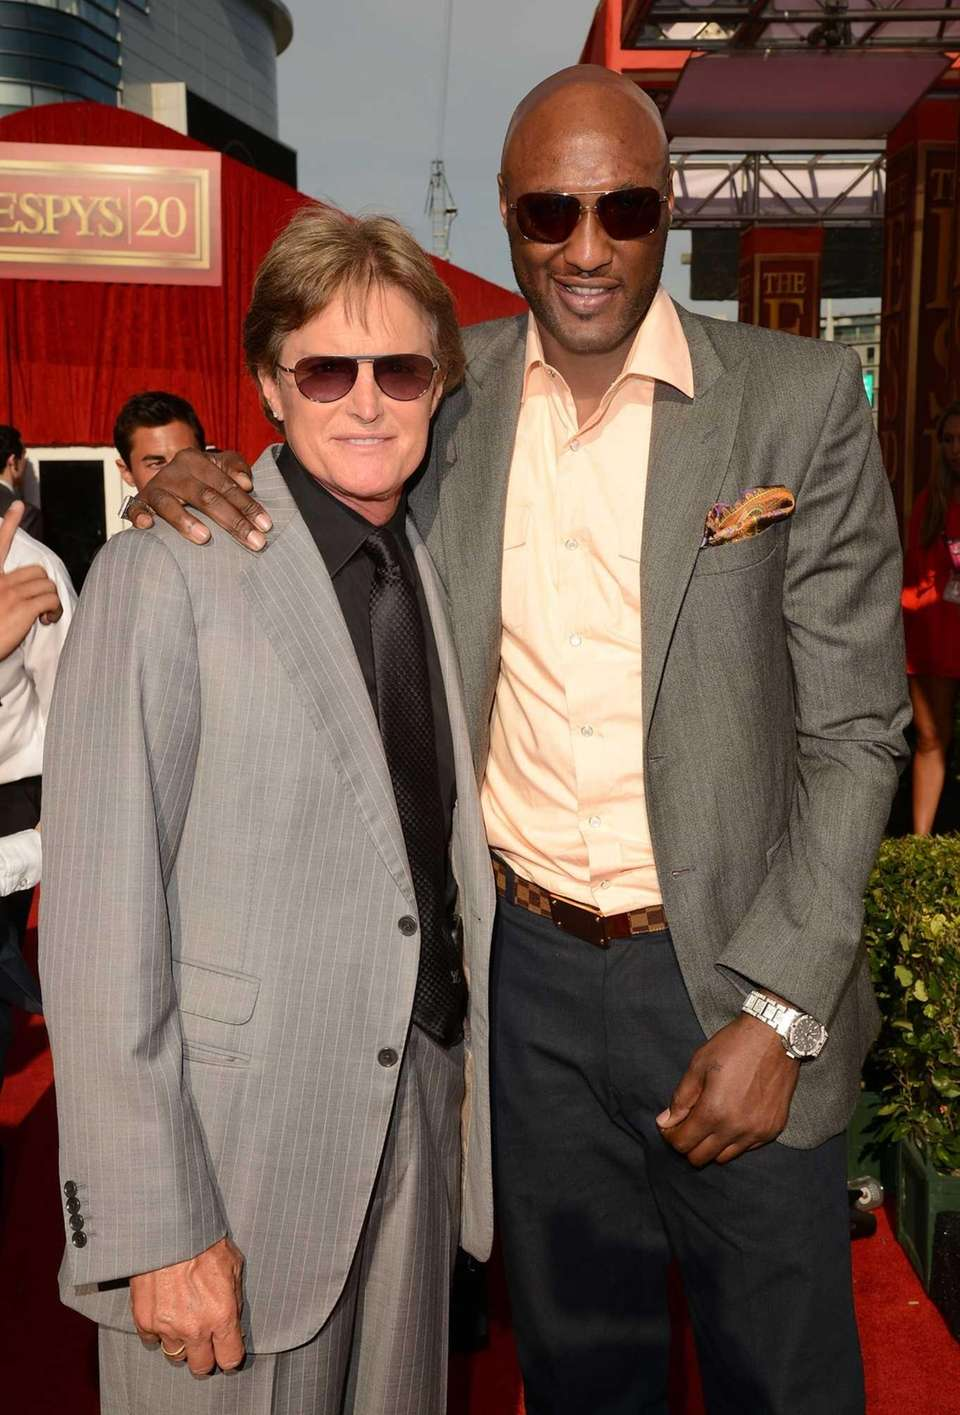 Bruce Jenner and his son-in-law, NBA player Lamar